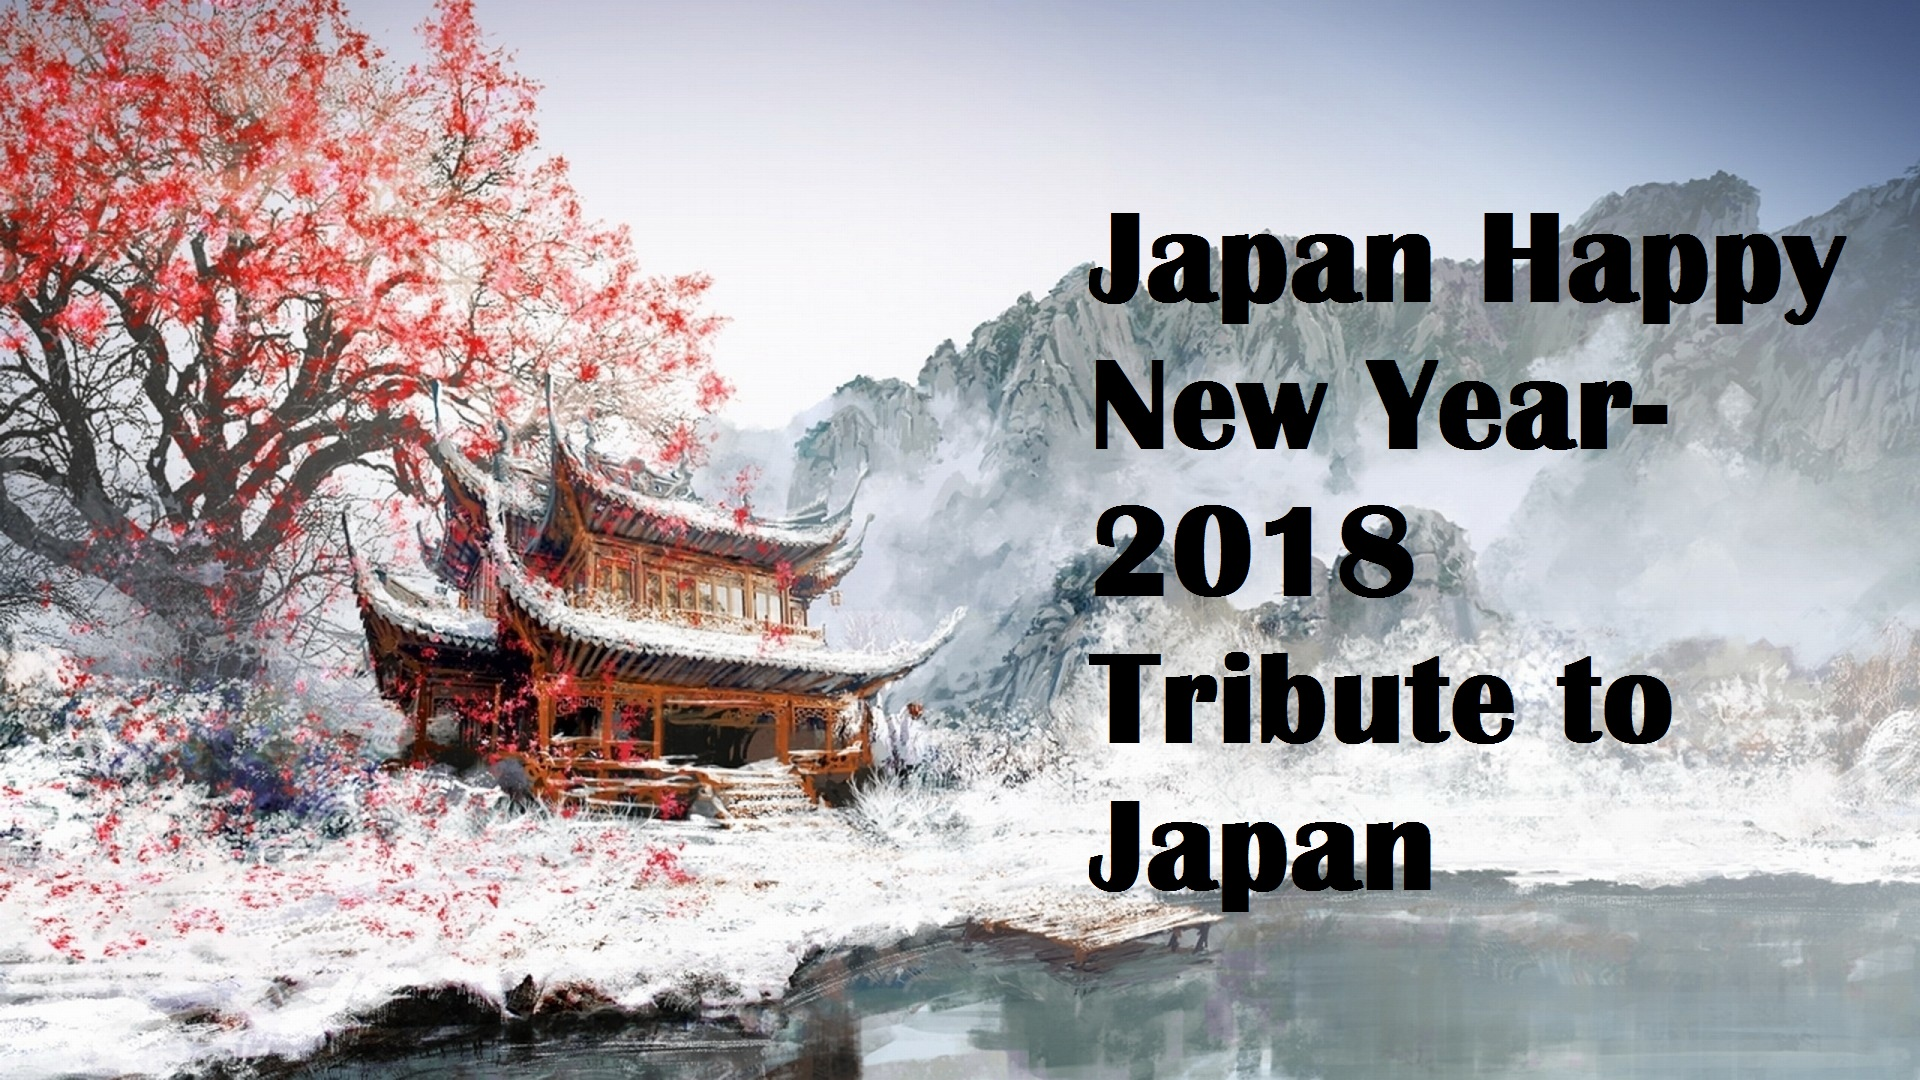 Japan-2018-Happy-New-Year-Hd-Images-Wallpapers